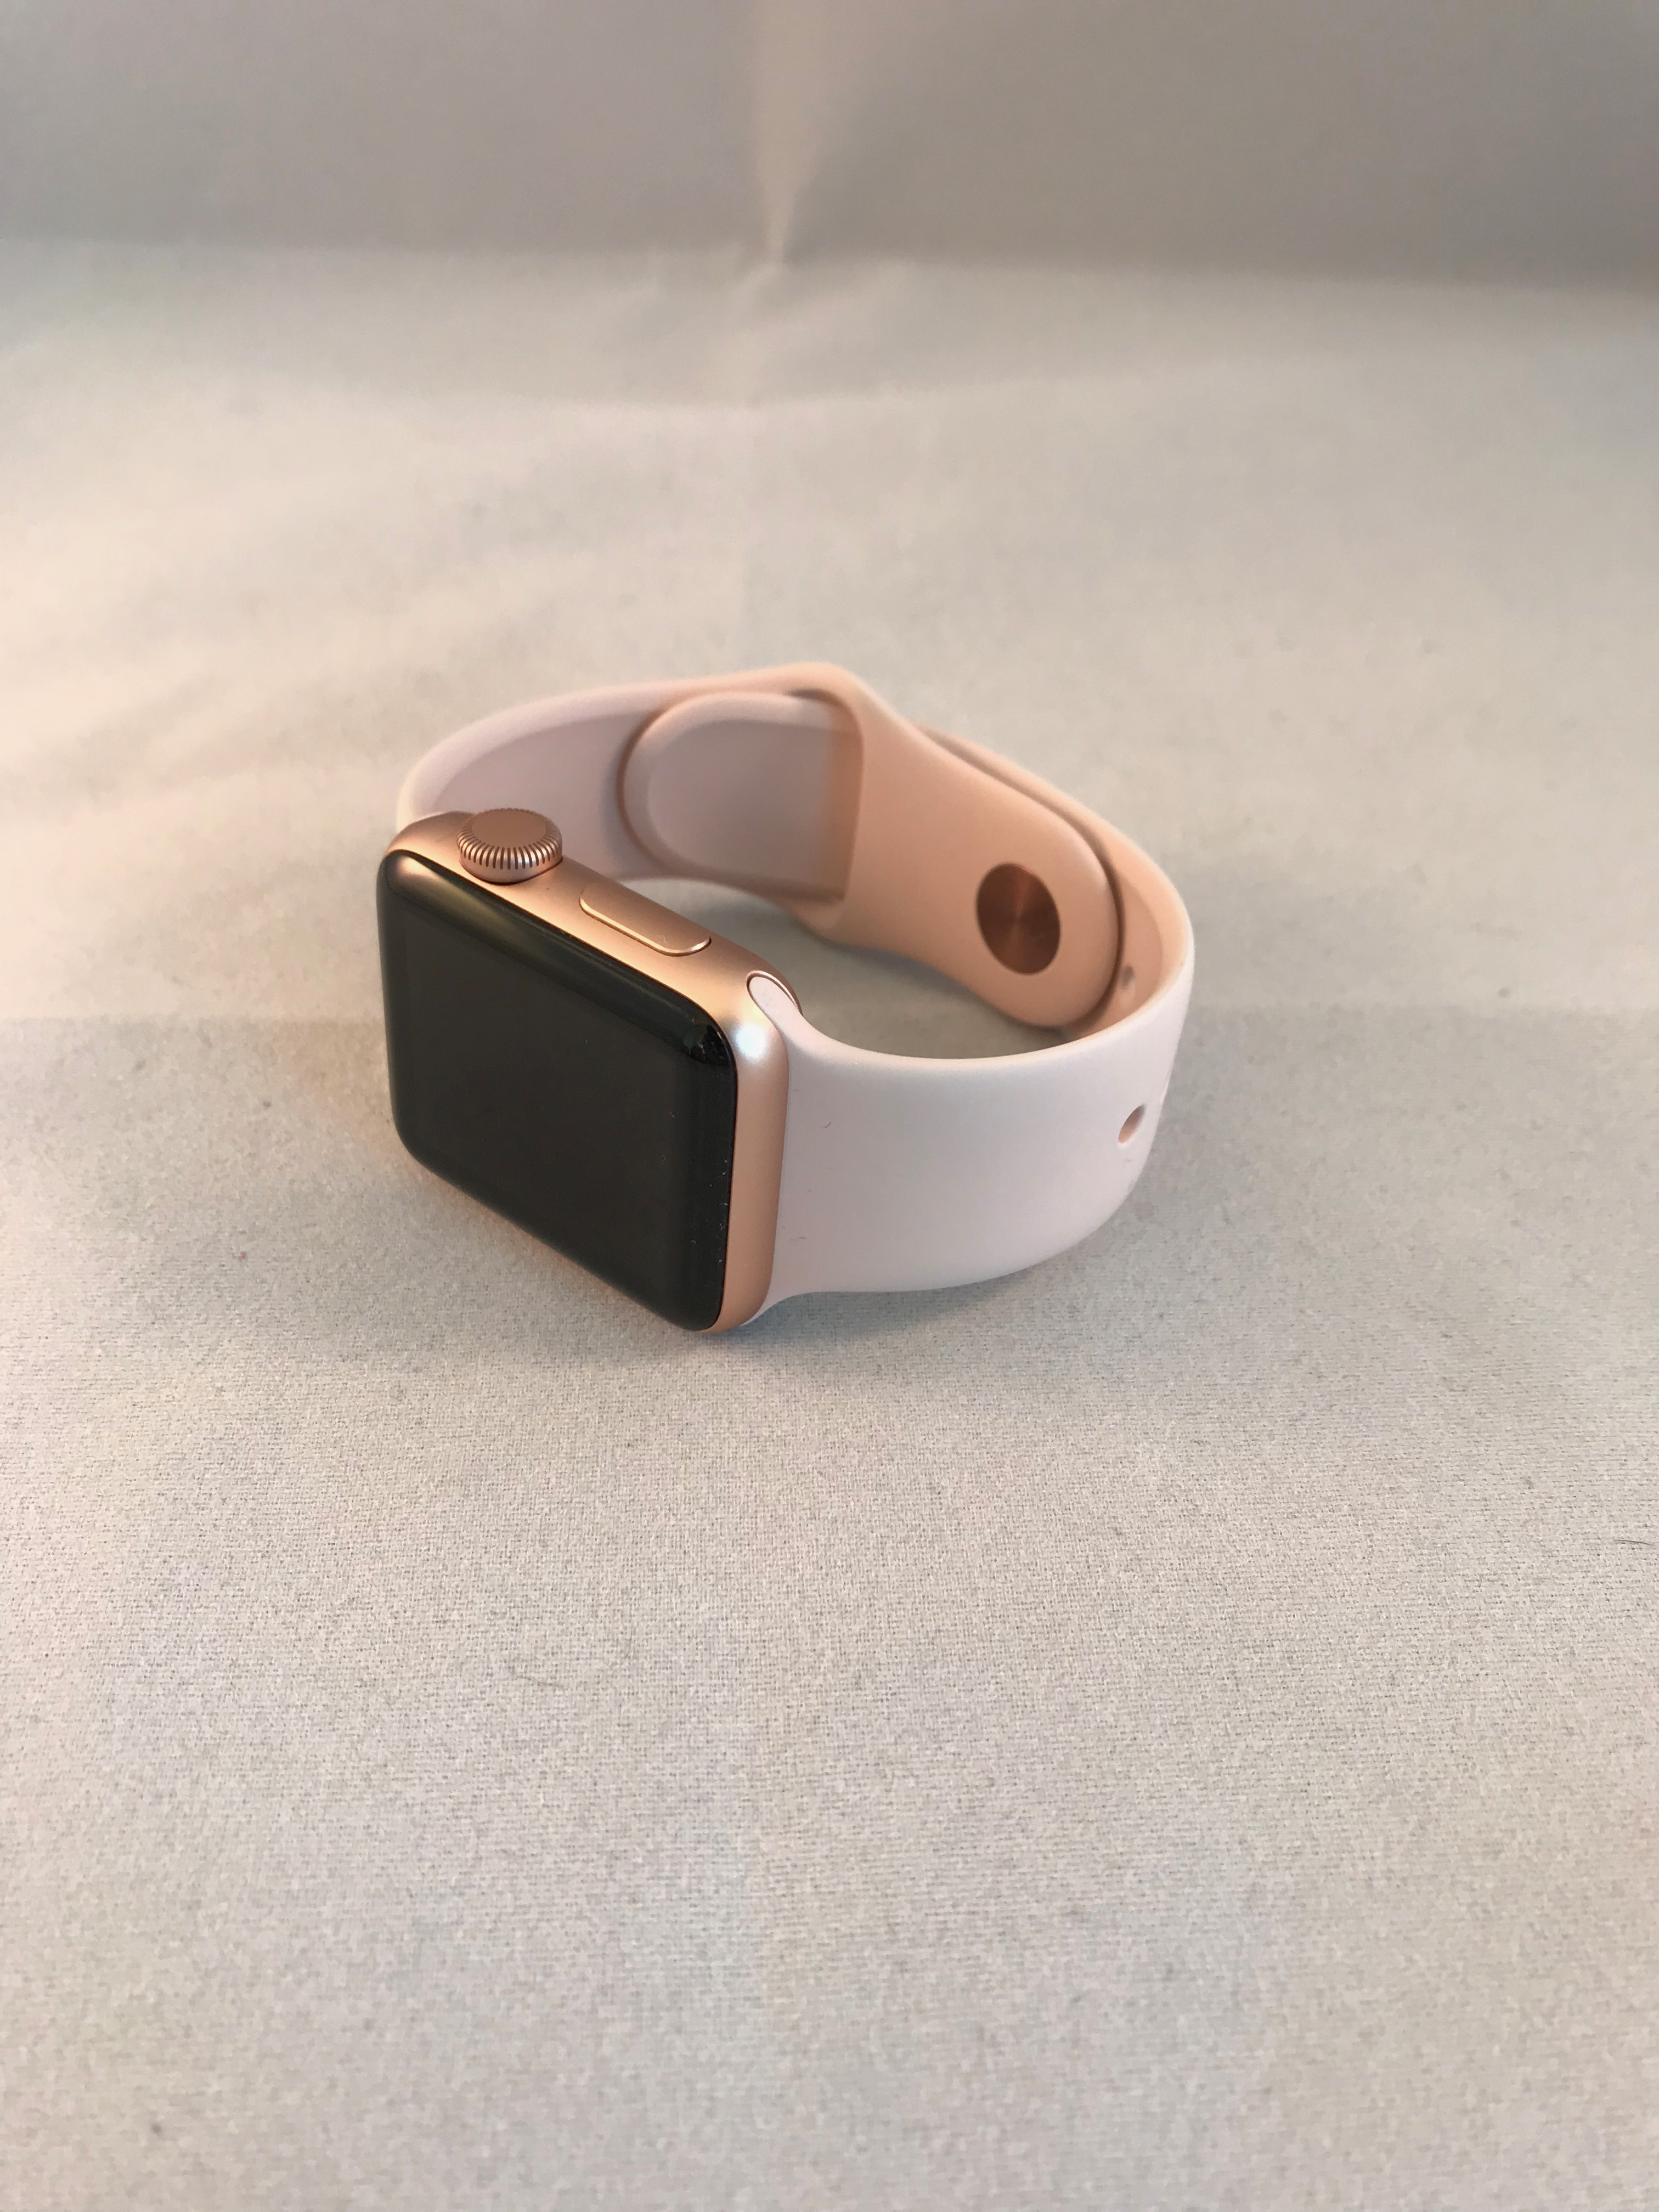 Watch Series 3 (38mm), Sport Band - Pink Sand, bild 3